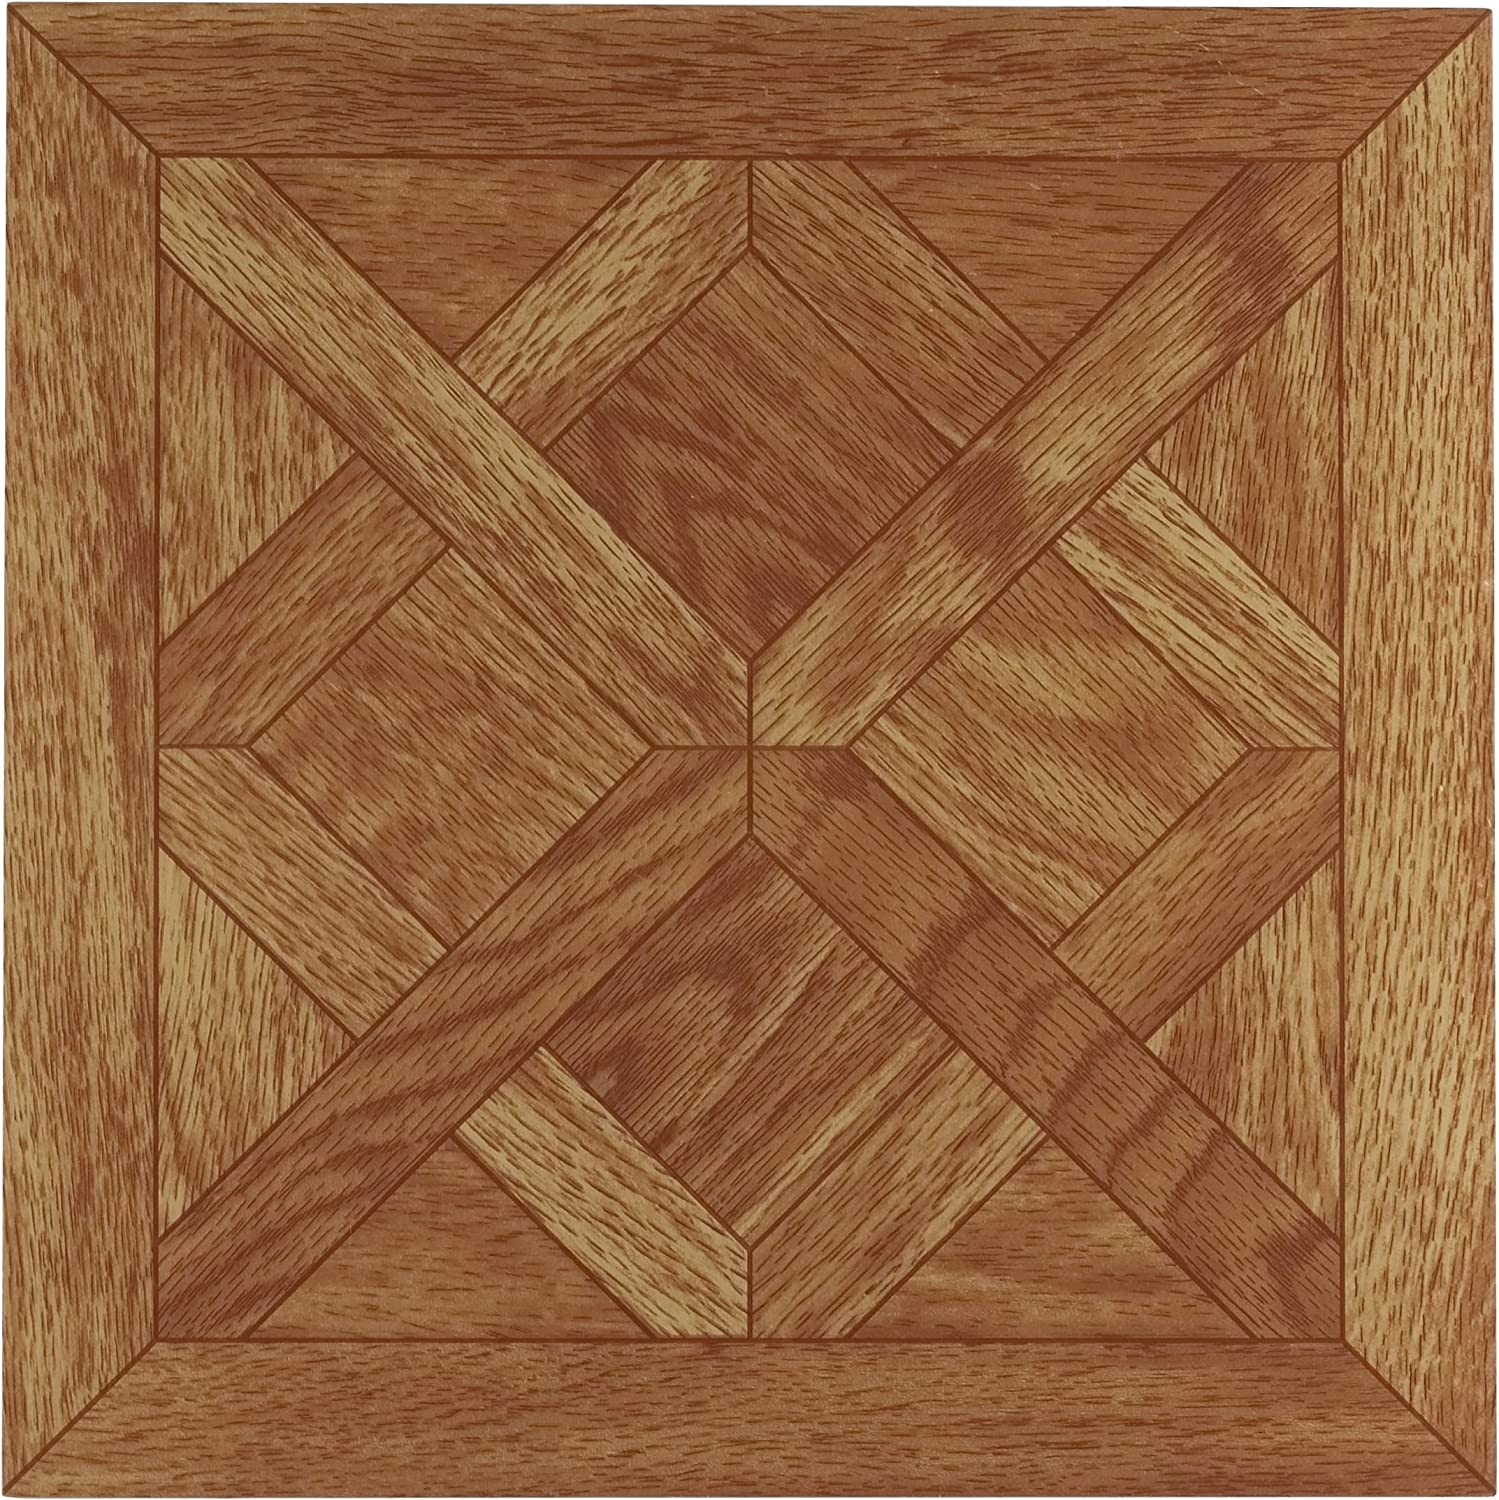 Achim Home Furnishings FTVWD20120 Nexus 12-Inch Vinyl Tile, Wood Classic Parquet Oak, 20-Pack